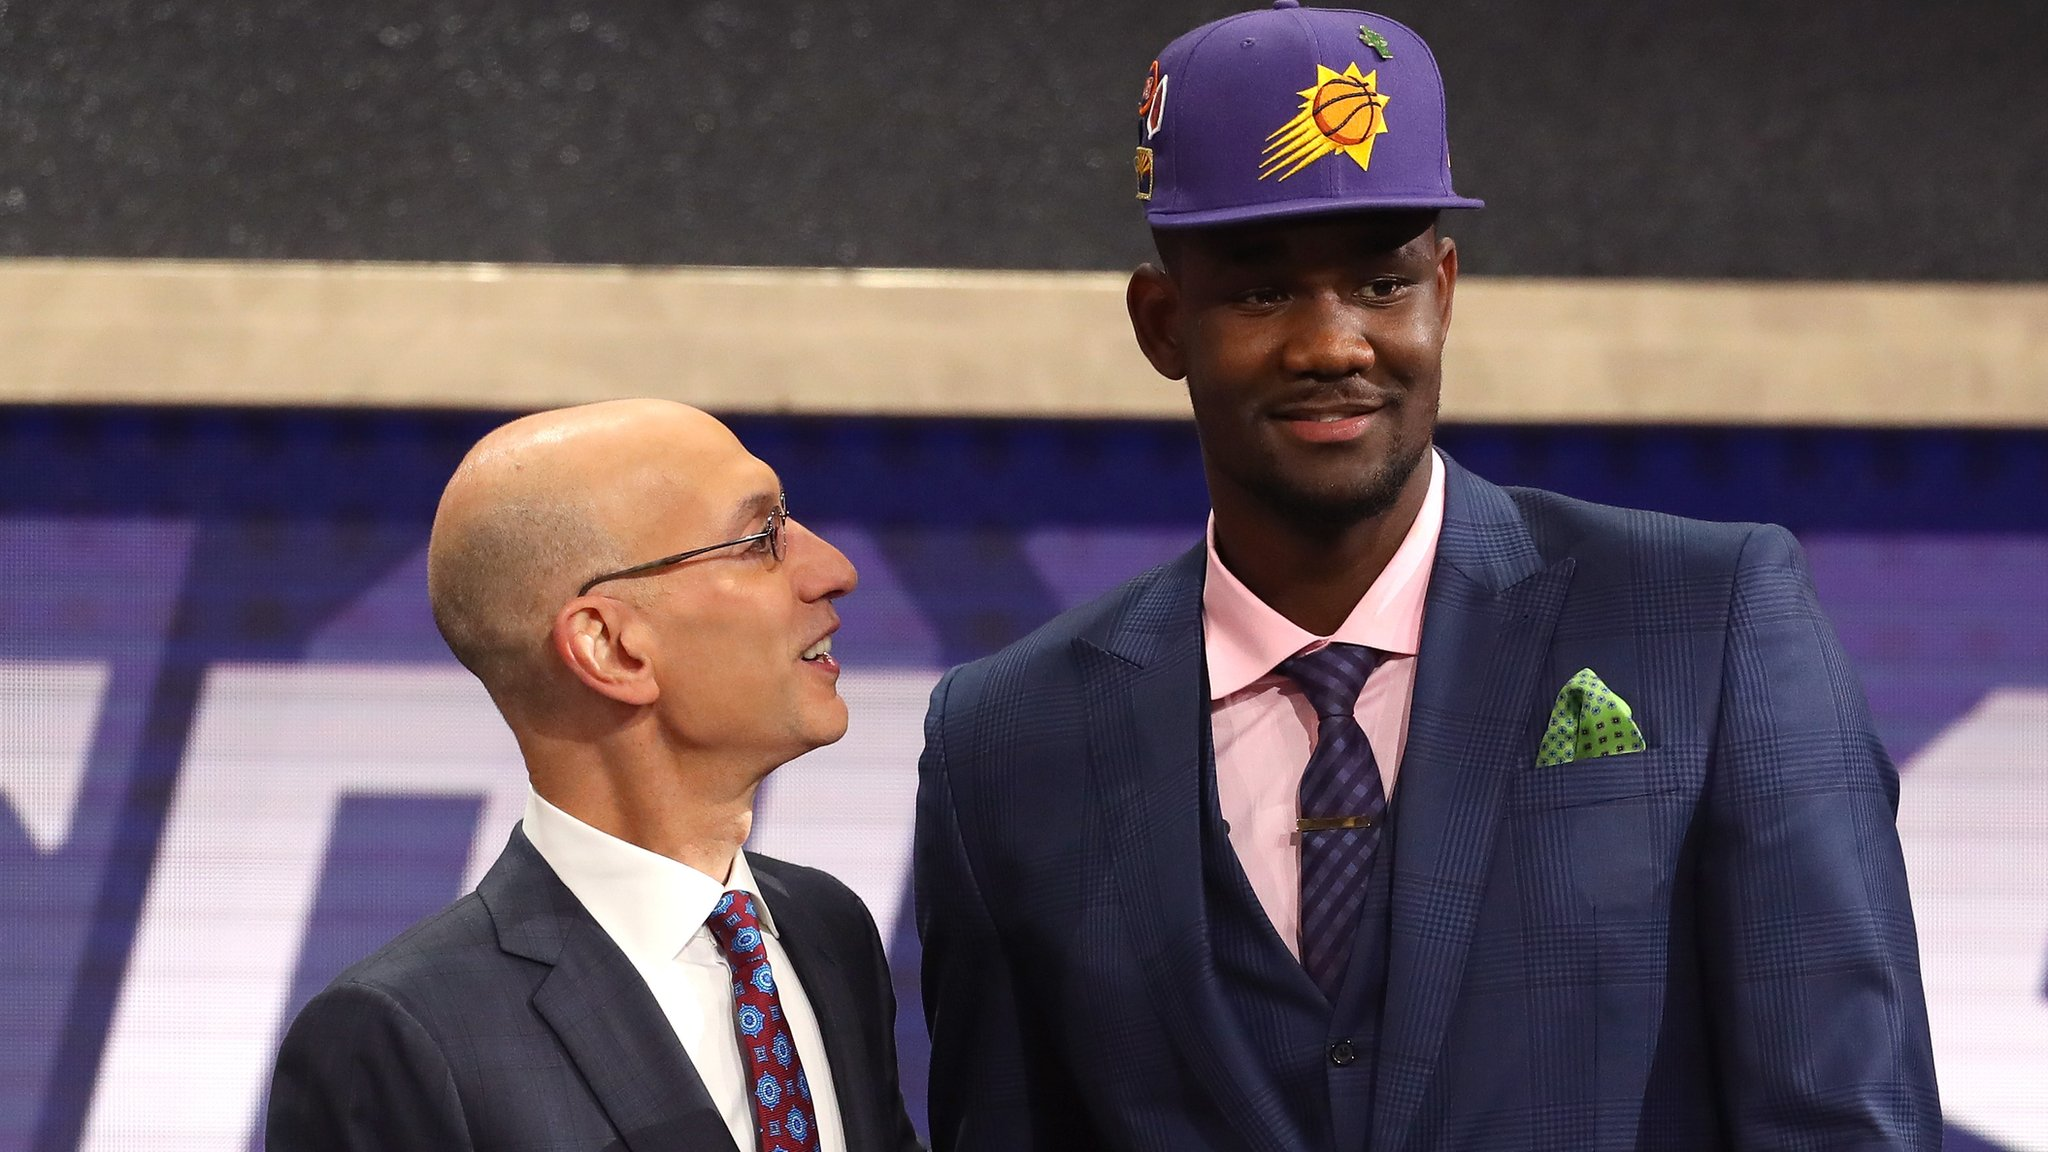 Phoenix select Ayton as number one draft pick